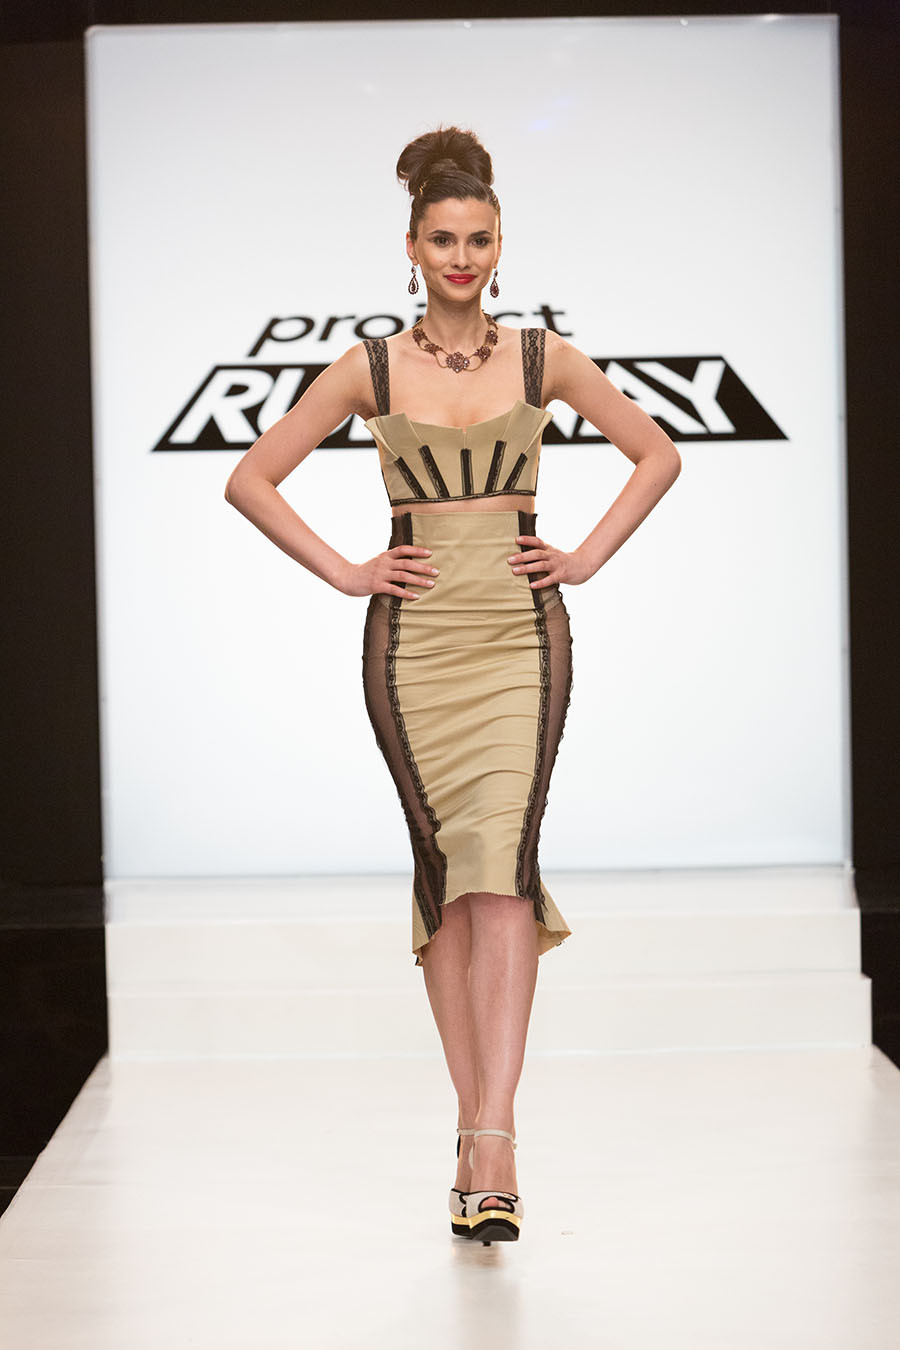 Project Runway Season 12, Episode 2